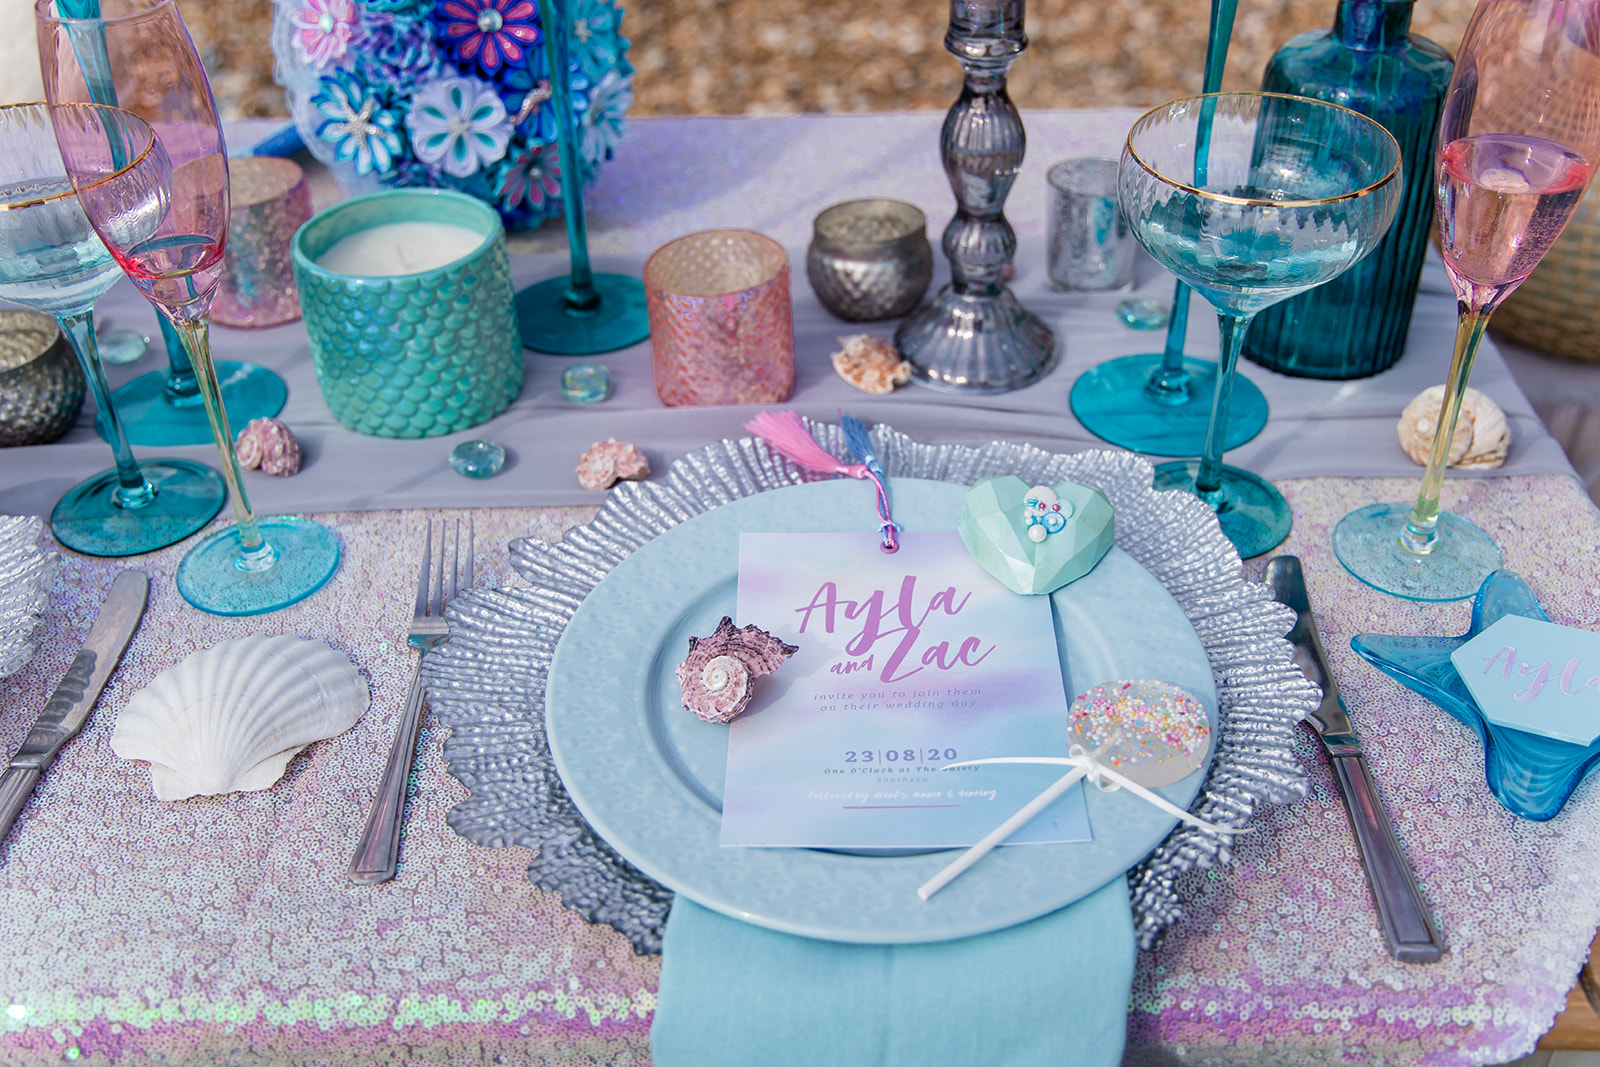 mermaid wedding - beach wedding - quirky wedding - unique wedding - alternative seaside wedding - alternative wedding - eclectic wedding styling - pastel blue and purple wedding table